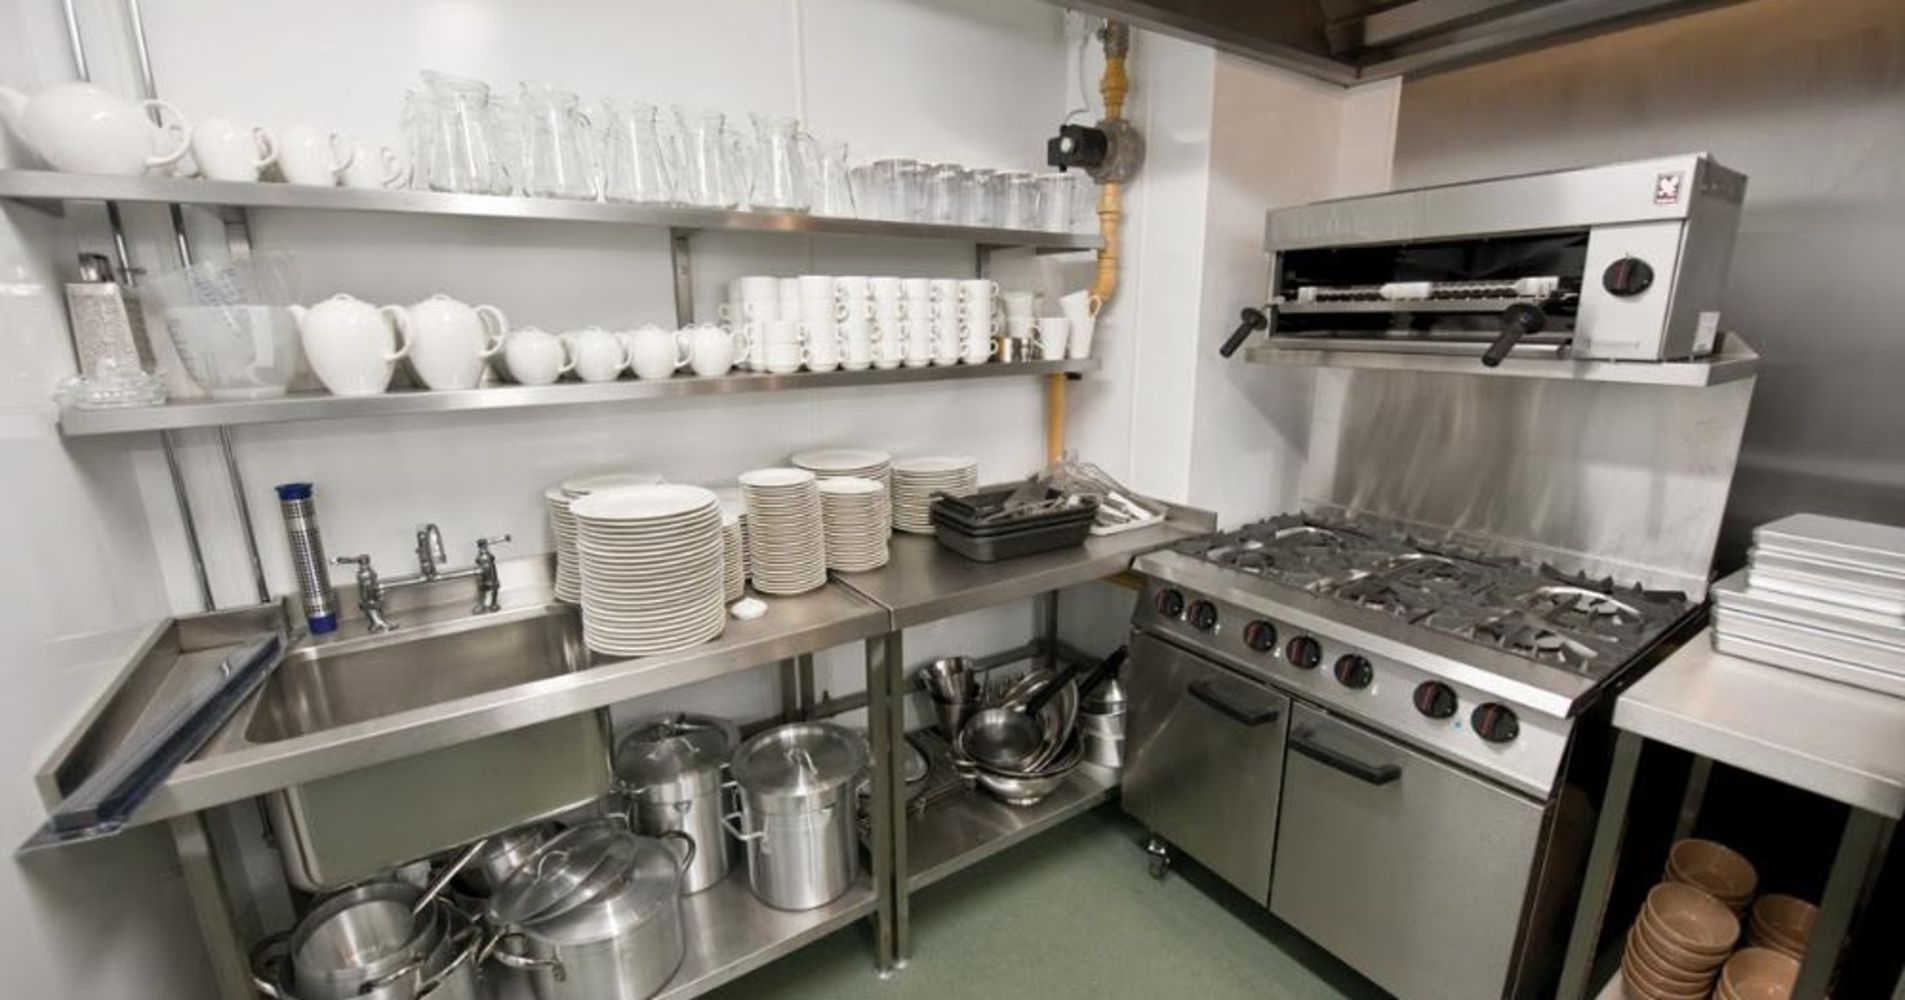 Catering Equipment Auction - Catering Equipment Auction Excellent Selection Of Equipment tp be Offered For Sale - Delivery Available